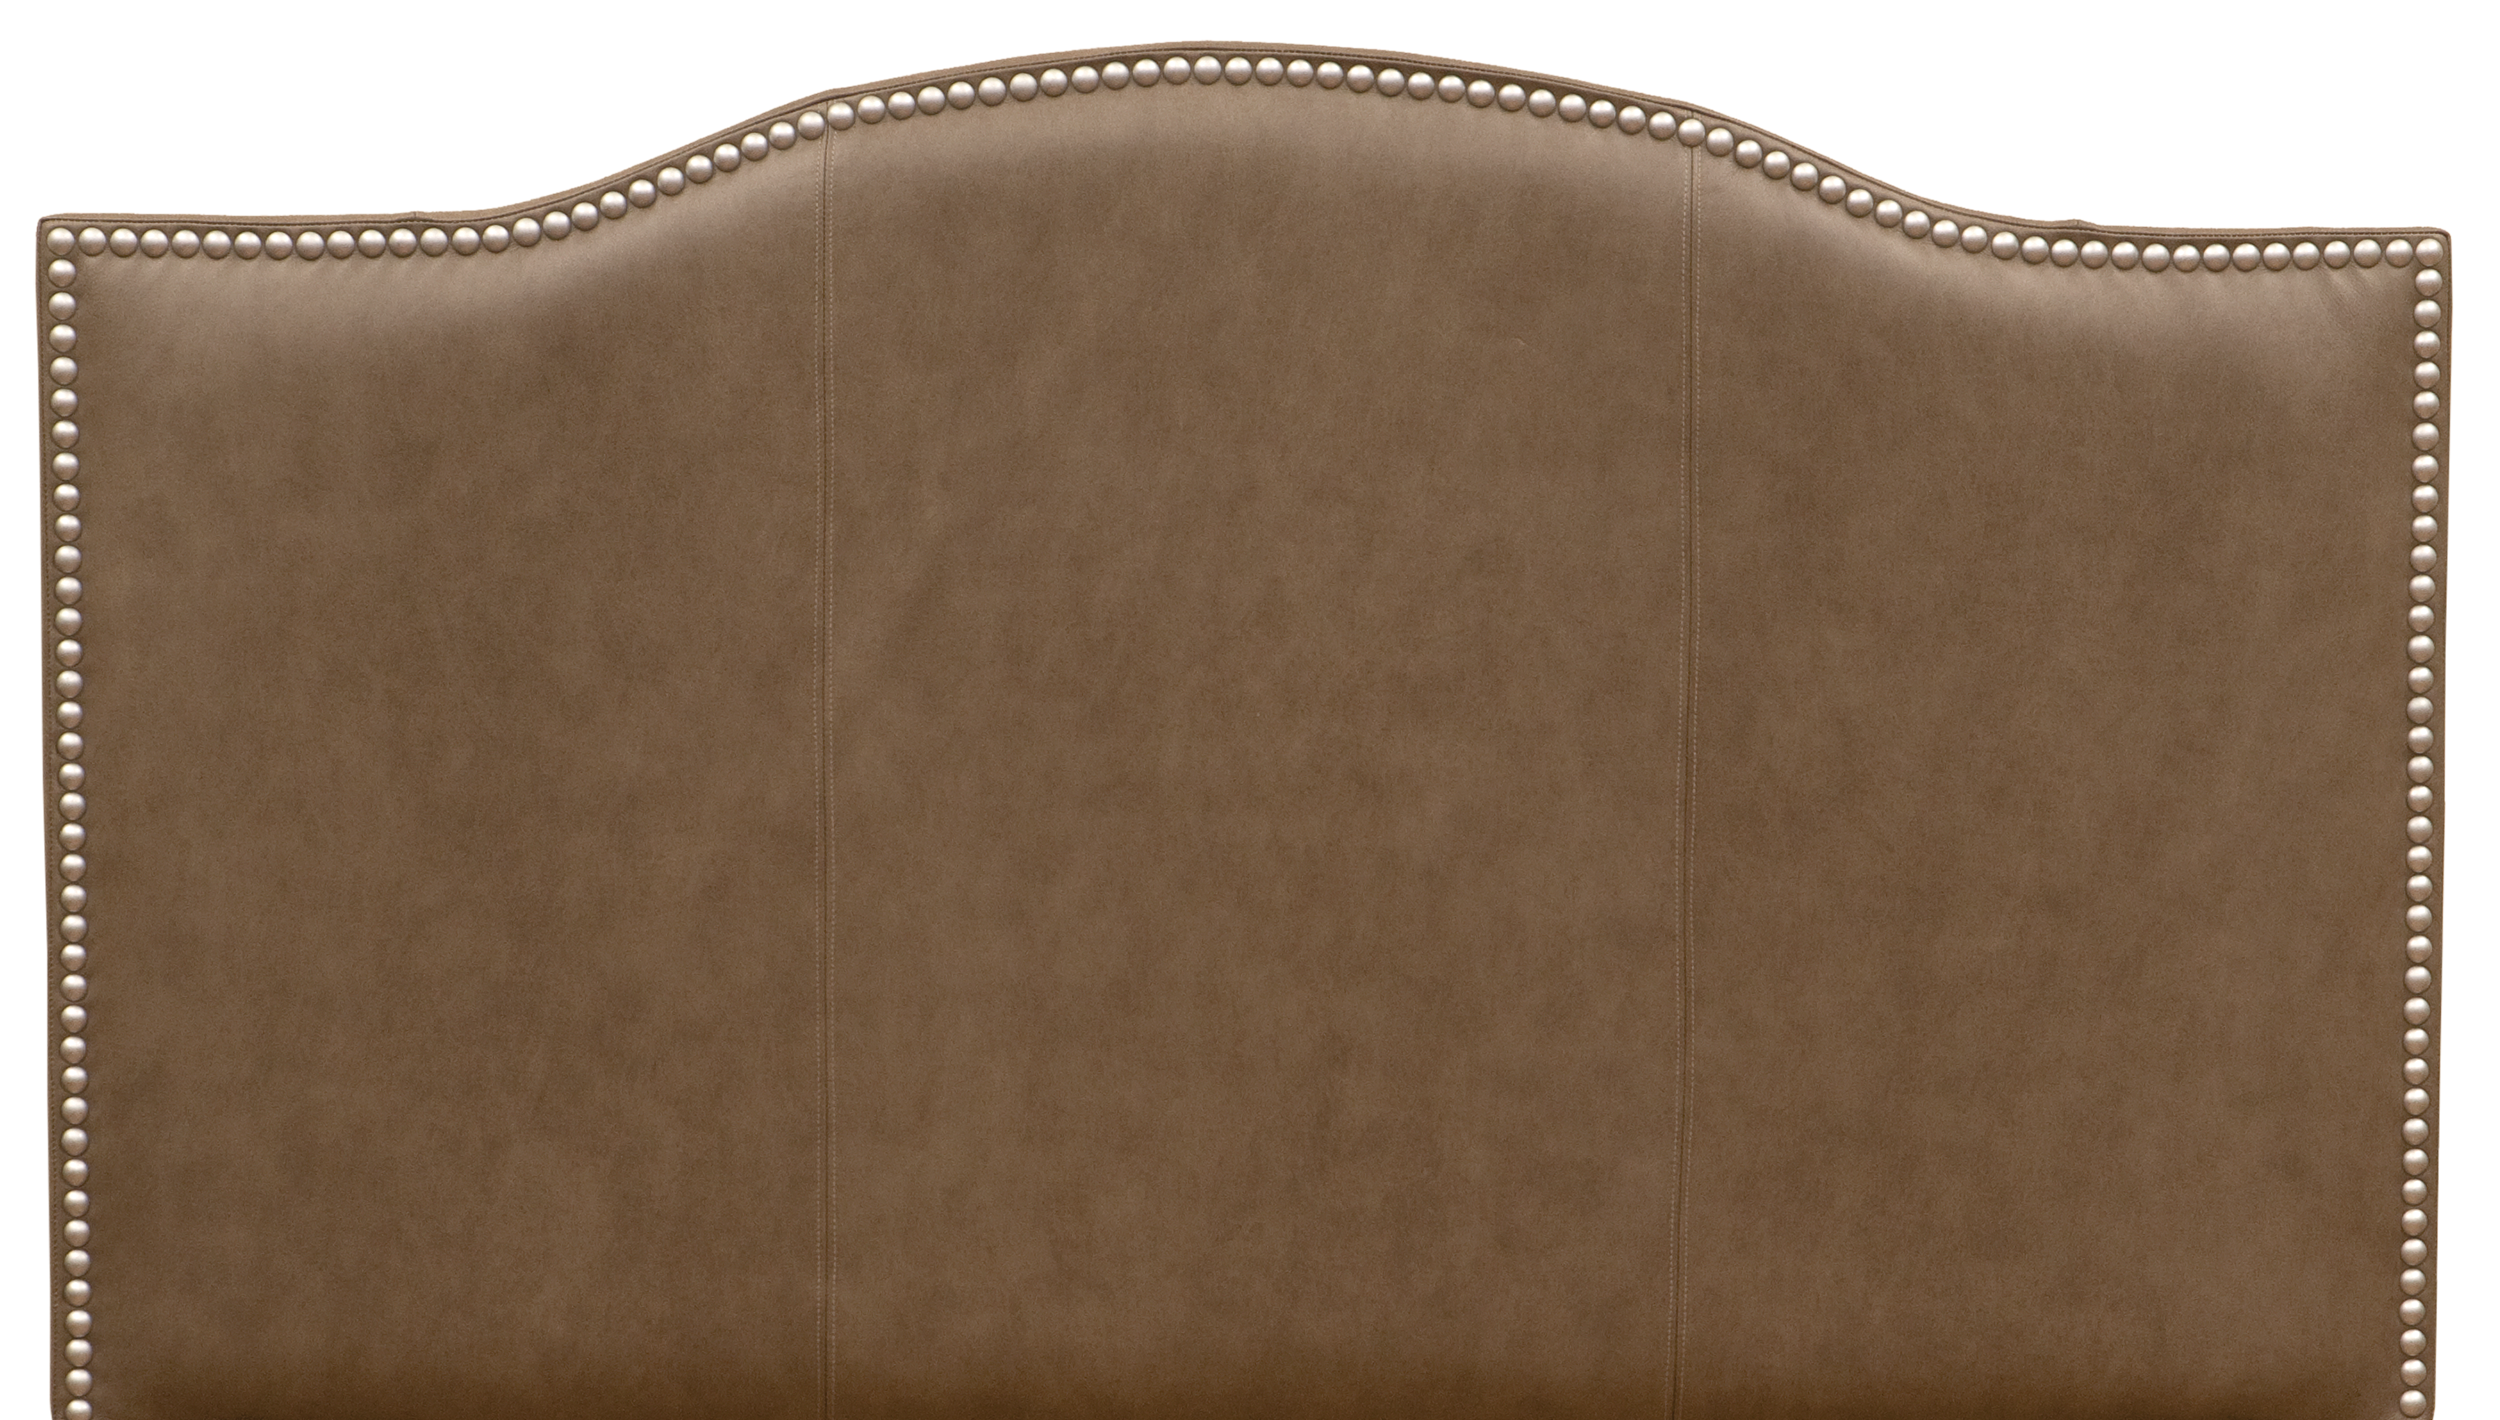 Serenity Headboard - Shown in Silver Fox leather with antique silver nail heads